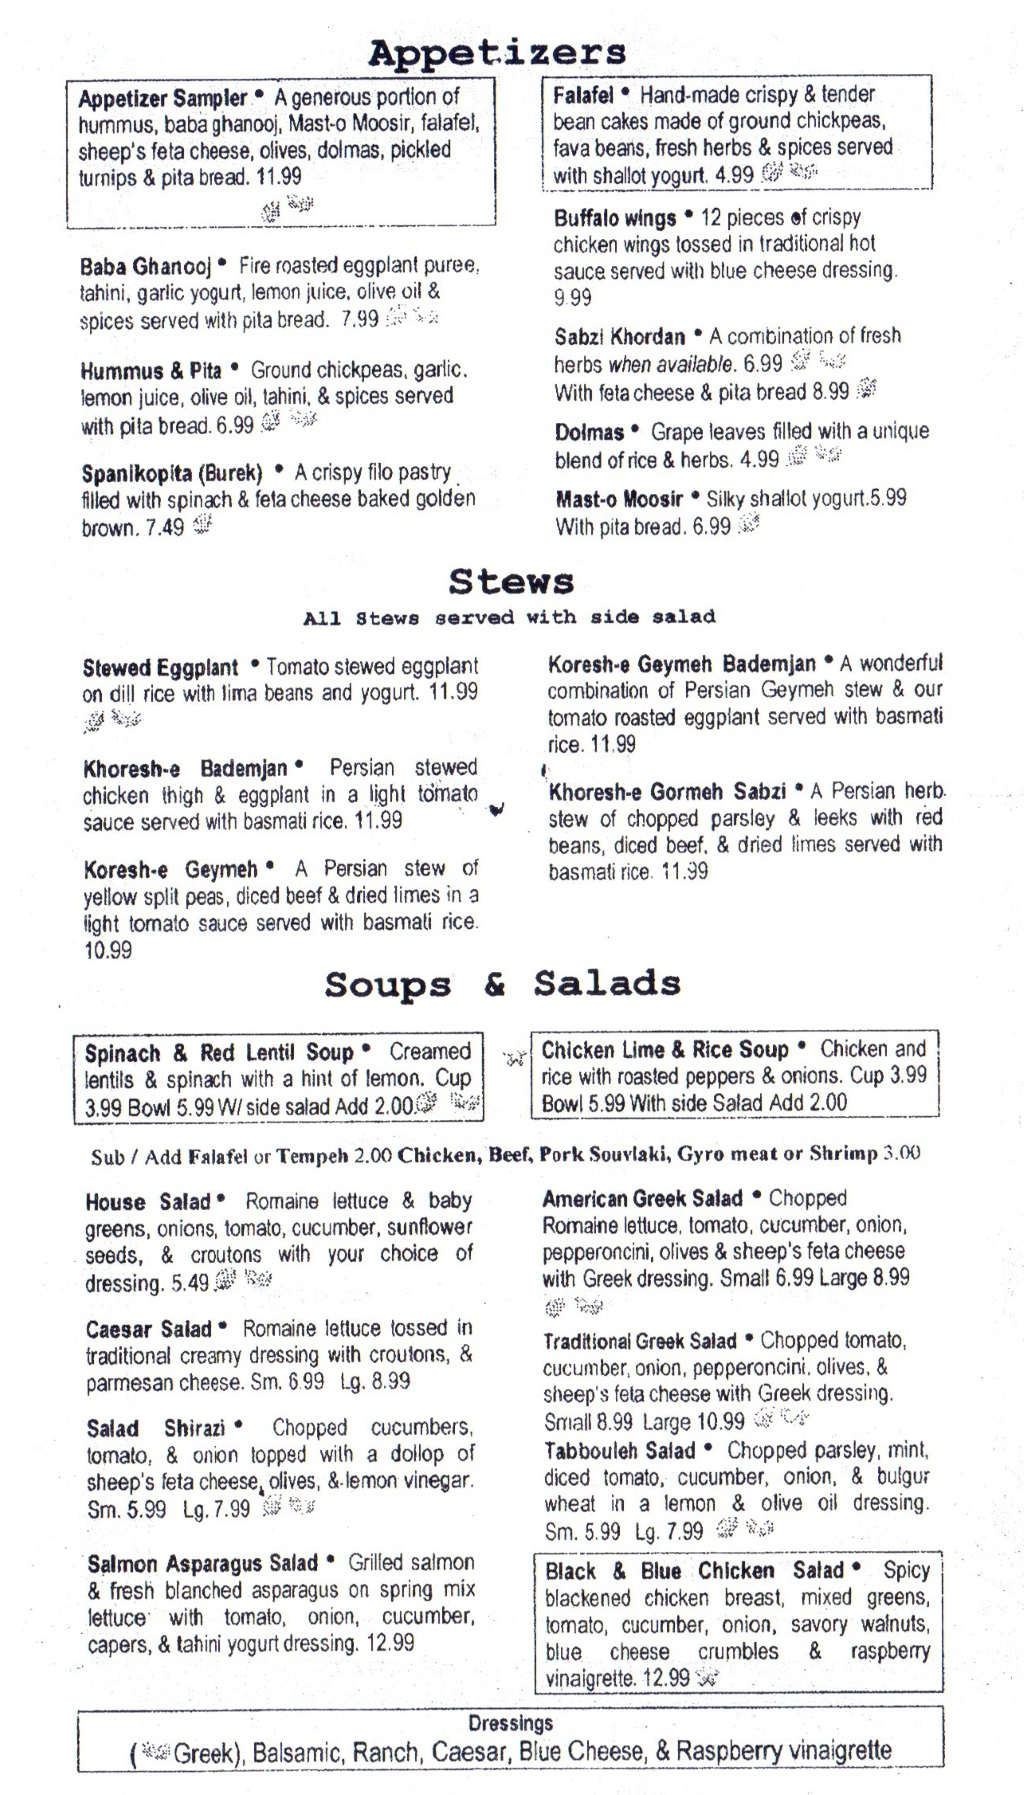 The Med menu - appetizers, stews, soups and salads